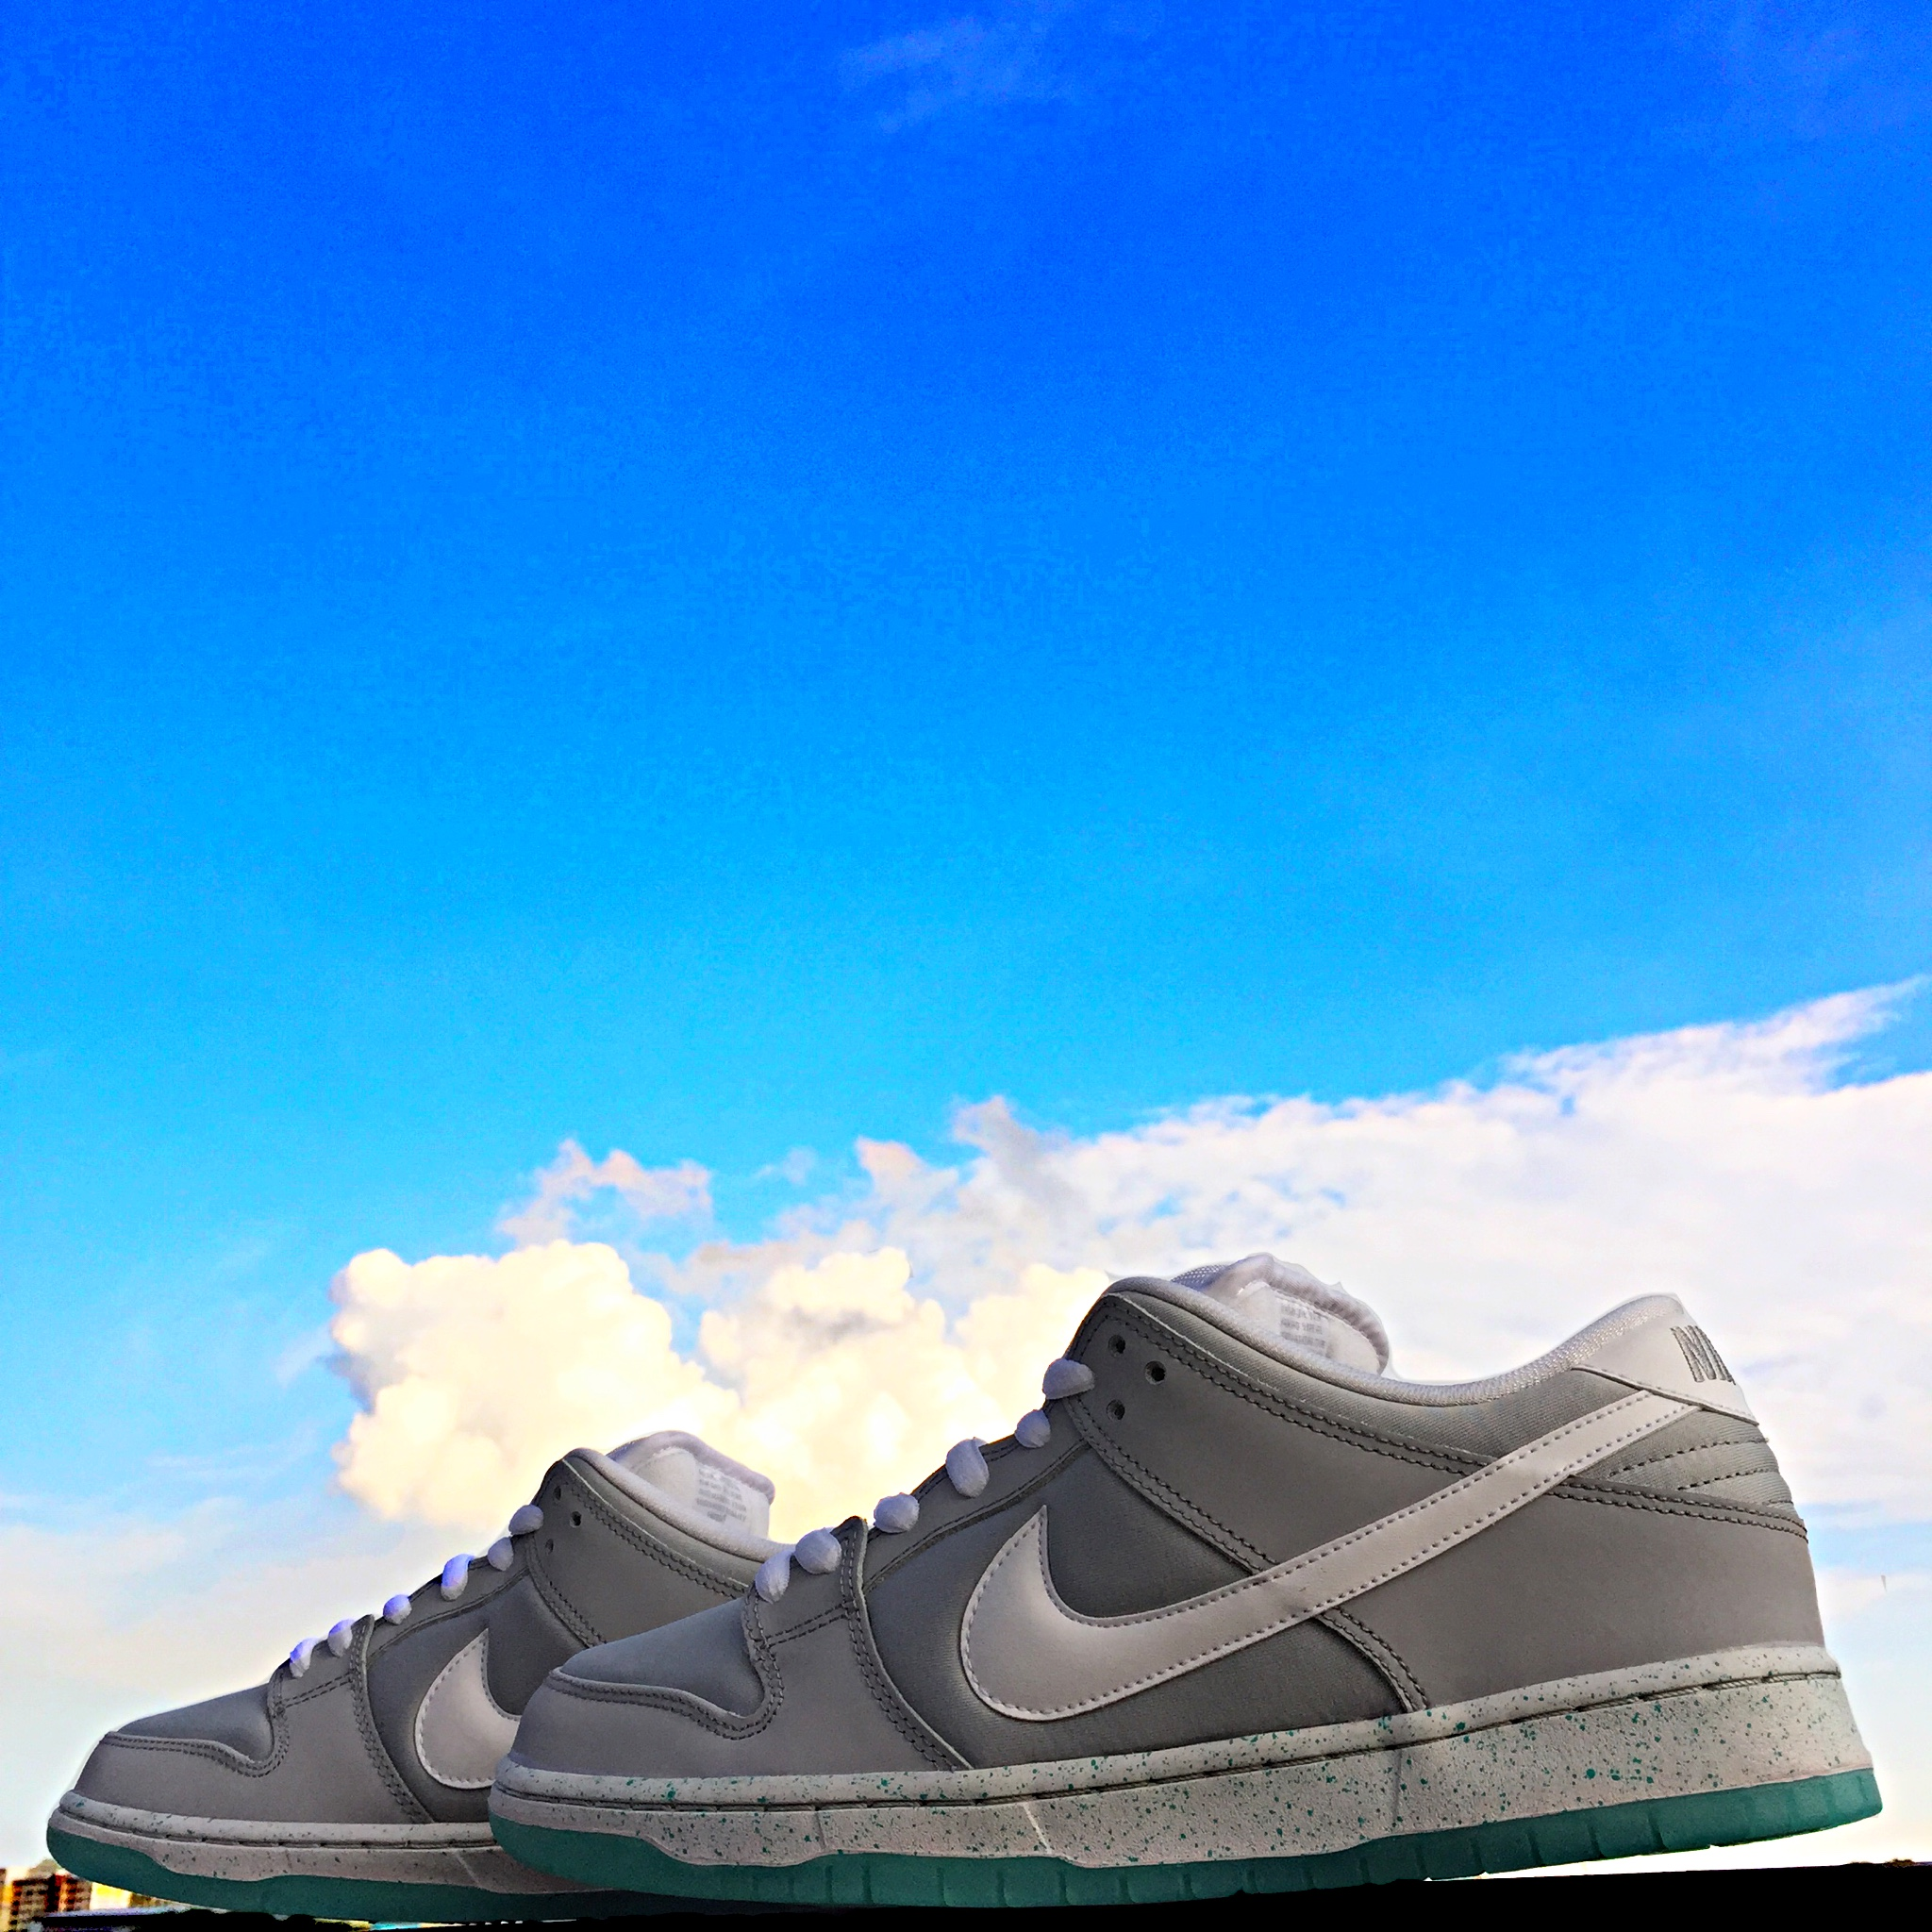 02628a0ab17a Nike Dunk Low Premium SB - Marty McFly - US10